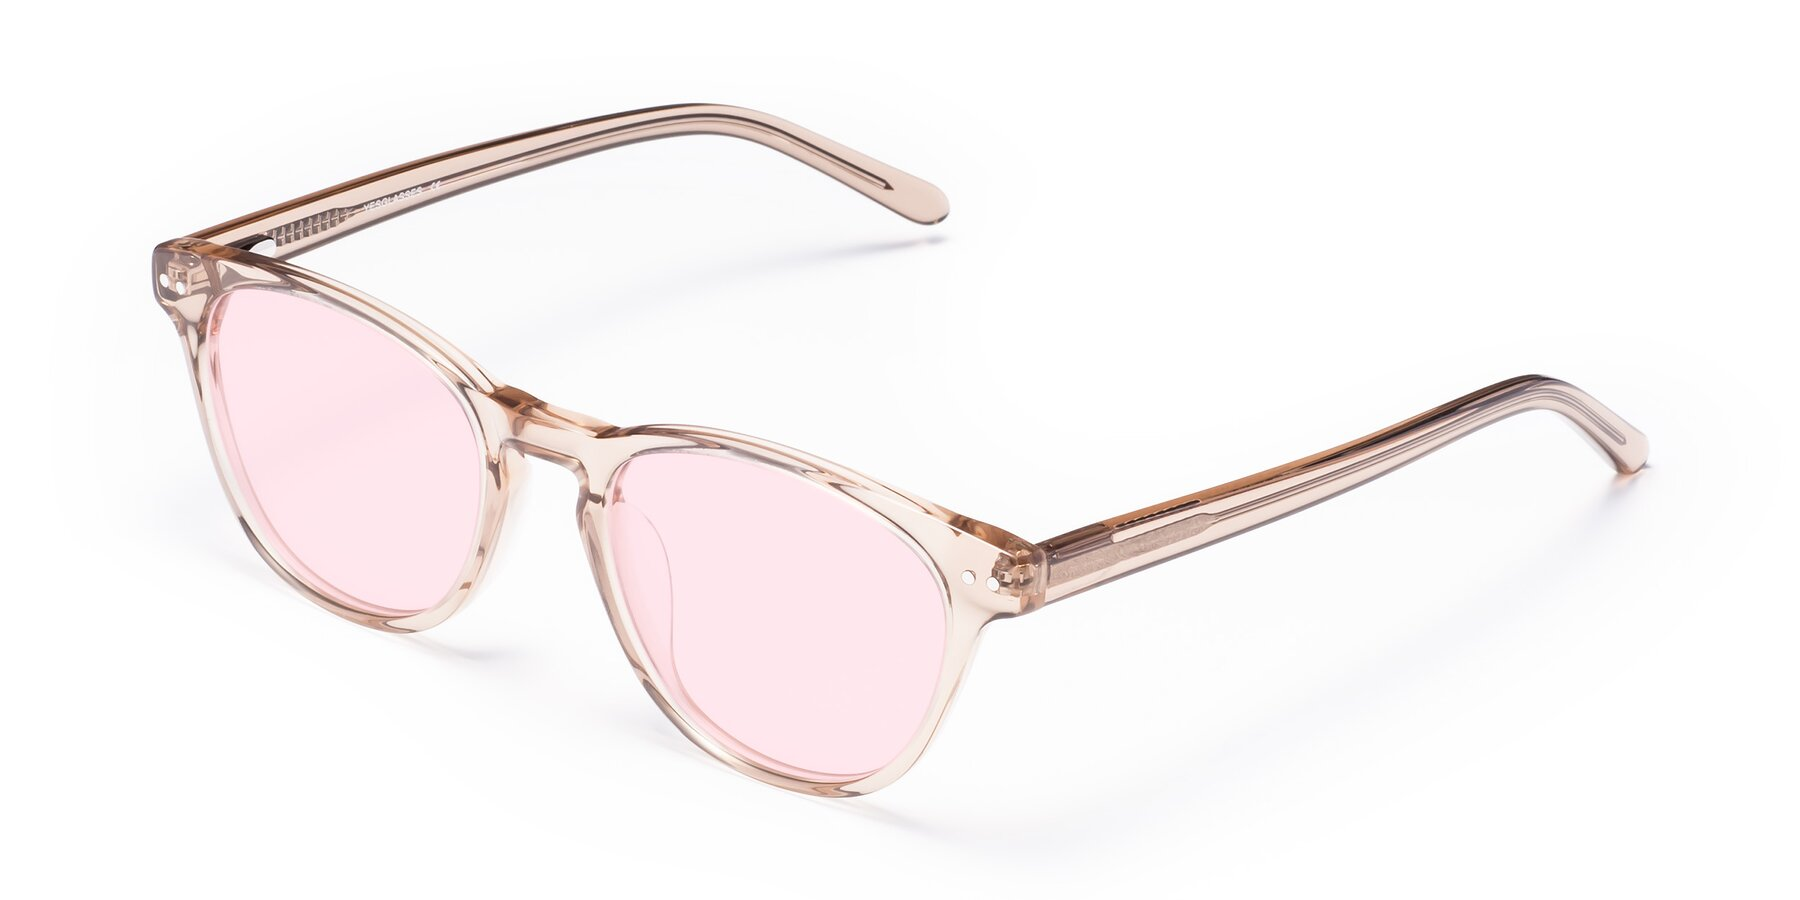 Angle of Blaze in light Brown with Light Pink Tinted Lenses